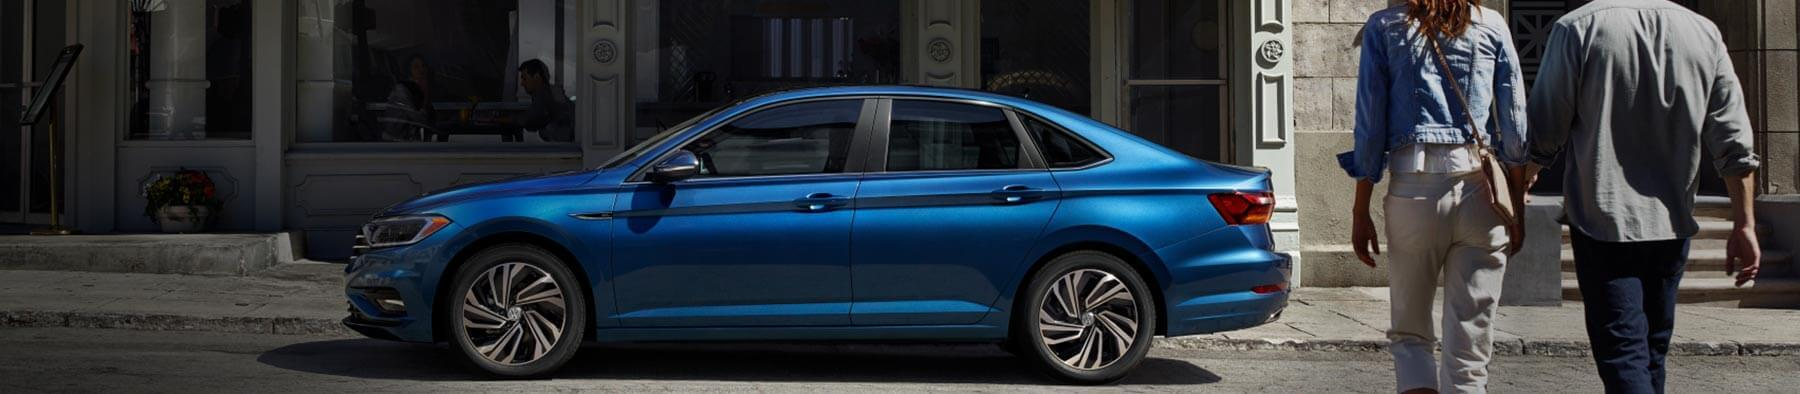 Safety is never optional with the 2019 Volkswagen Jetta